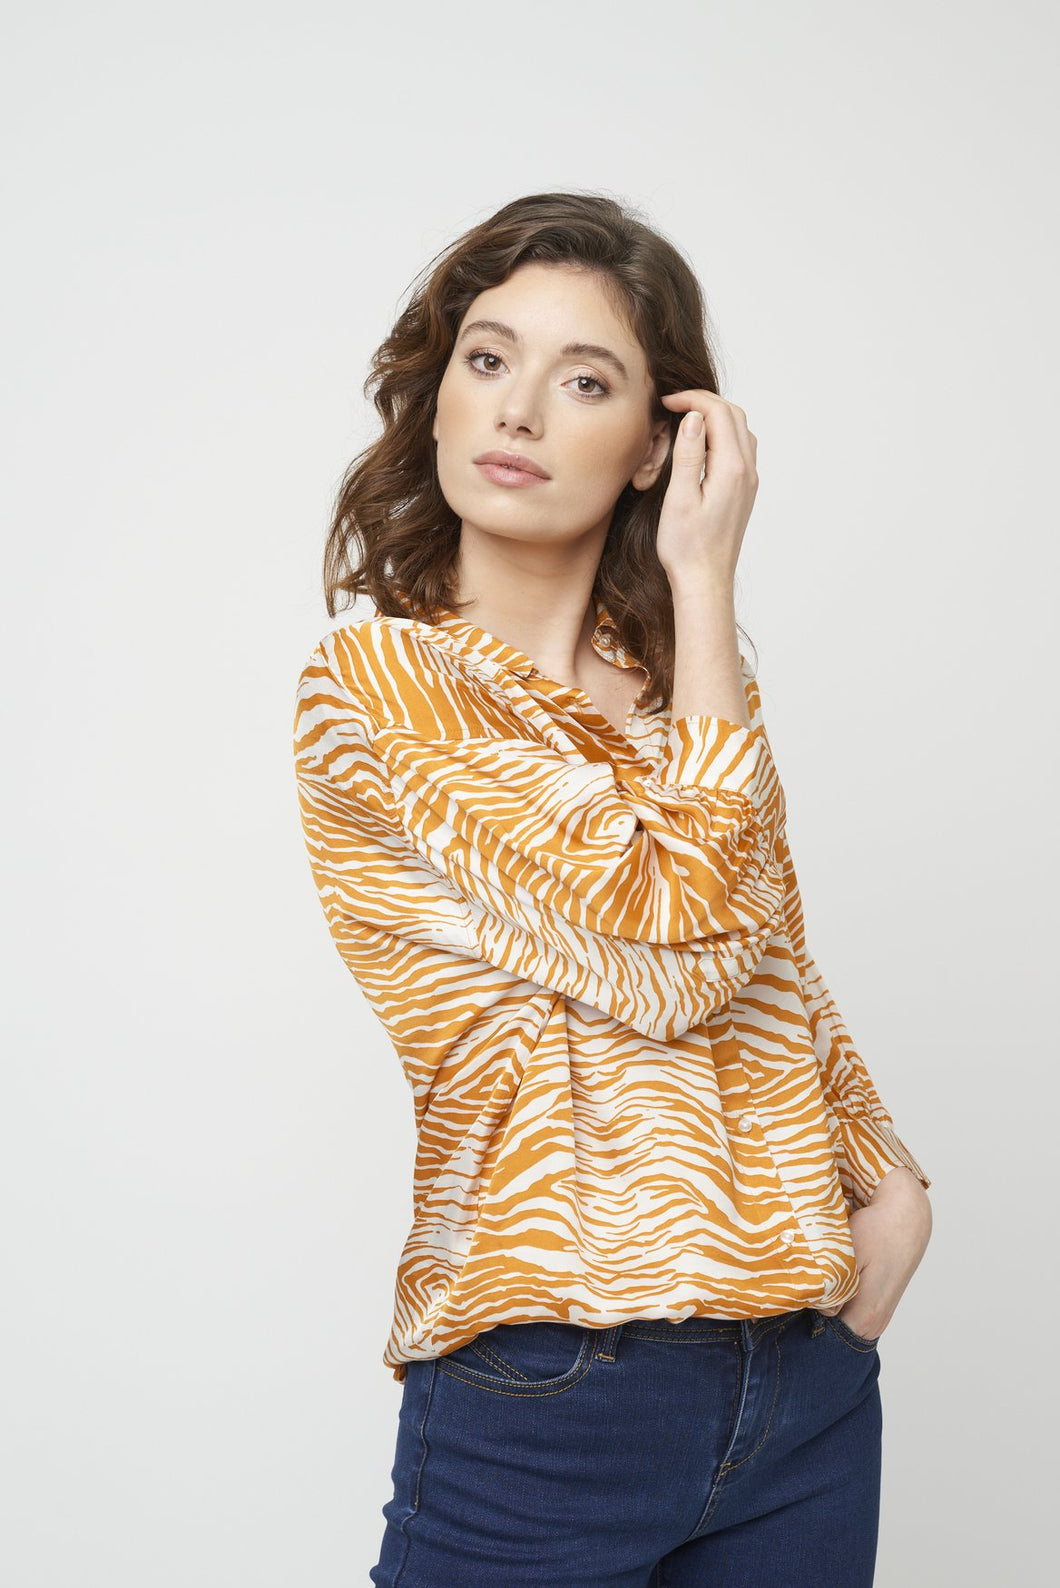 Garbie Shirt in Orange by Soya Concept